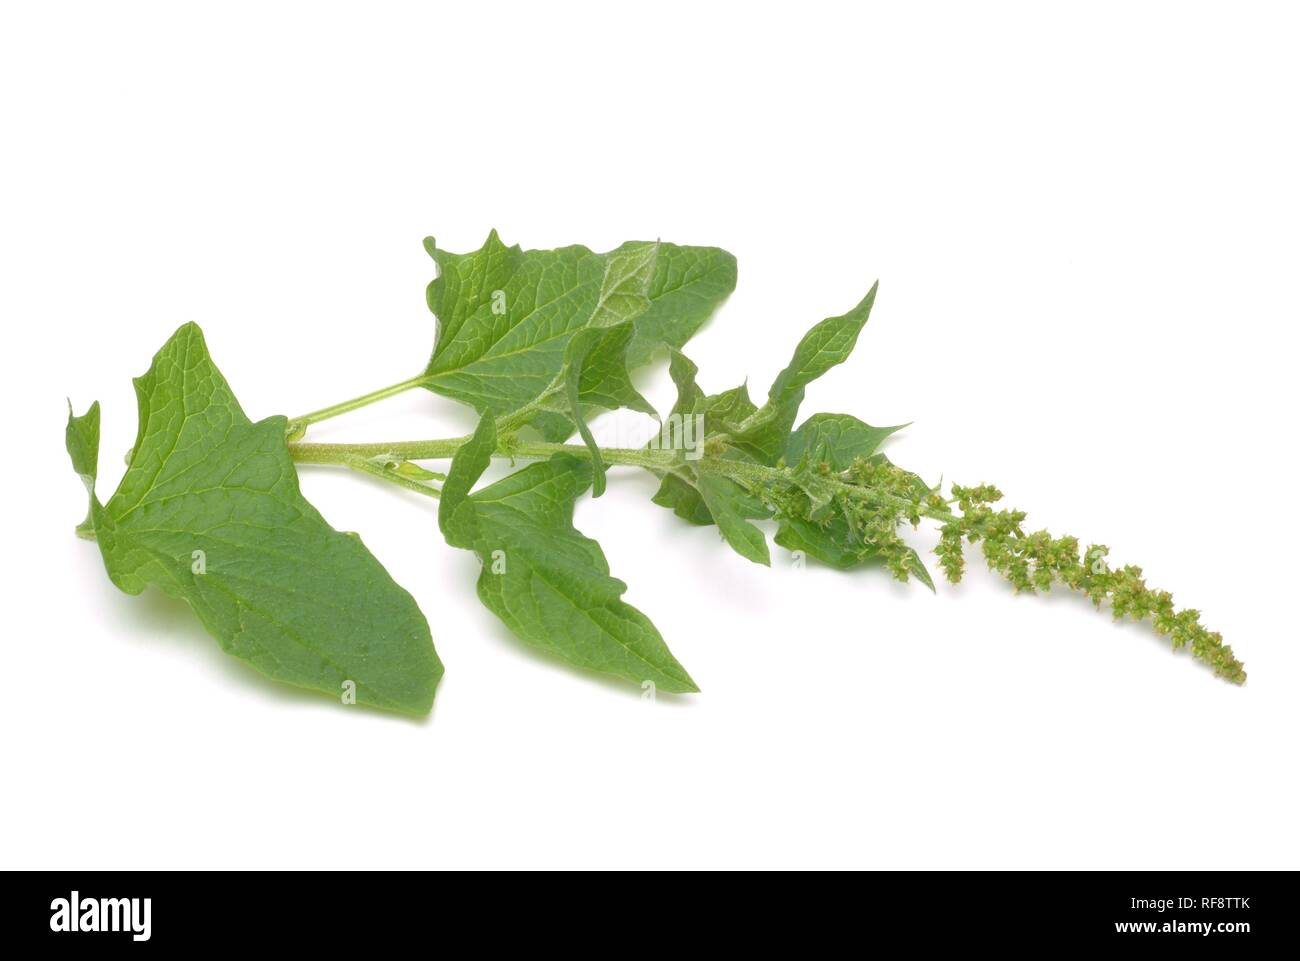 Good King Henry or Poor Man's Asparagus or Lincolnshire Spinach (Chenopodium bonus-henricus) - Stock Image